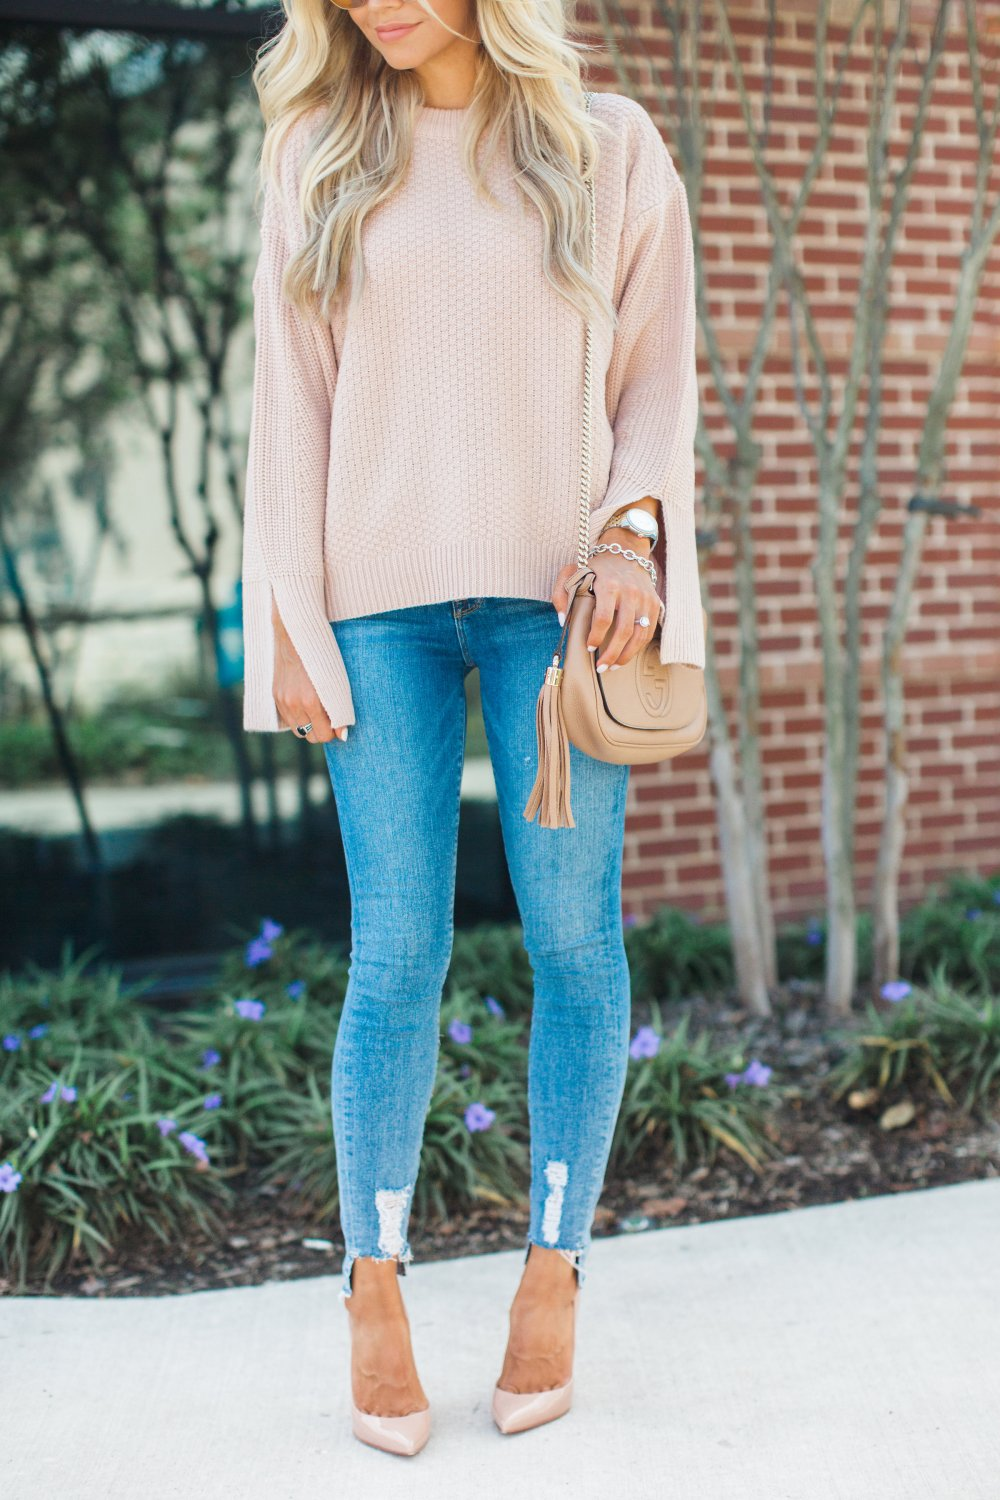 This blush sweater is perfect for fall and for moms that are on the go! It is very versatile and so comfy!